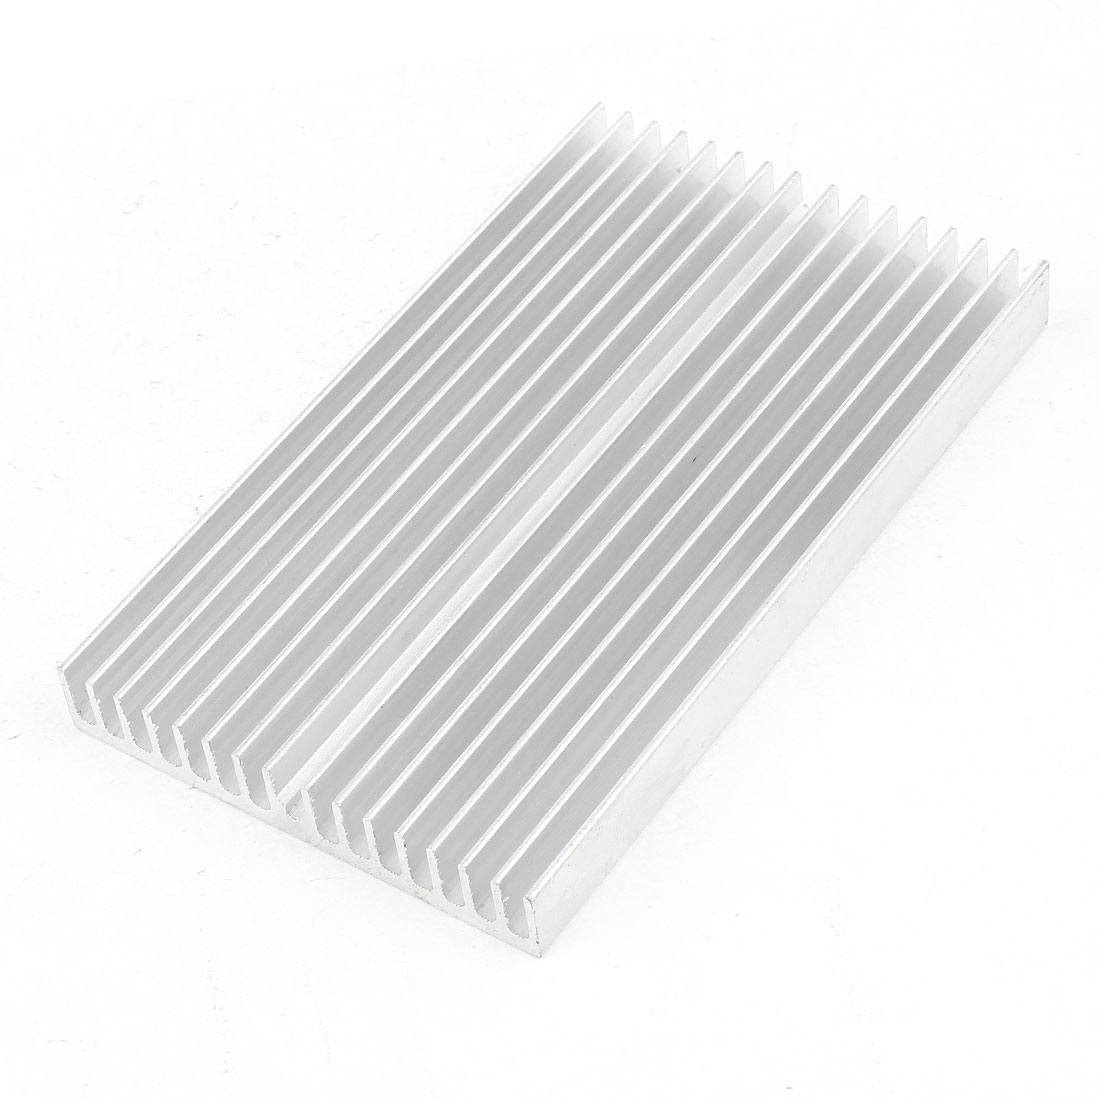 Silver Tone Aluminum Cooler Radiator Heat Sink Heatsink 100mm x 60mm x 10mm